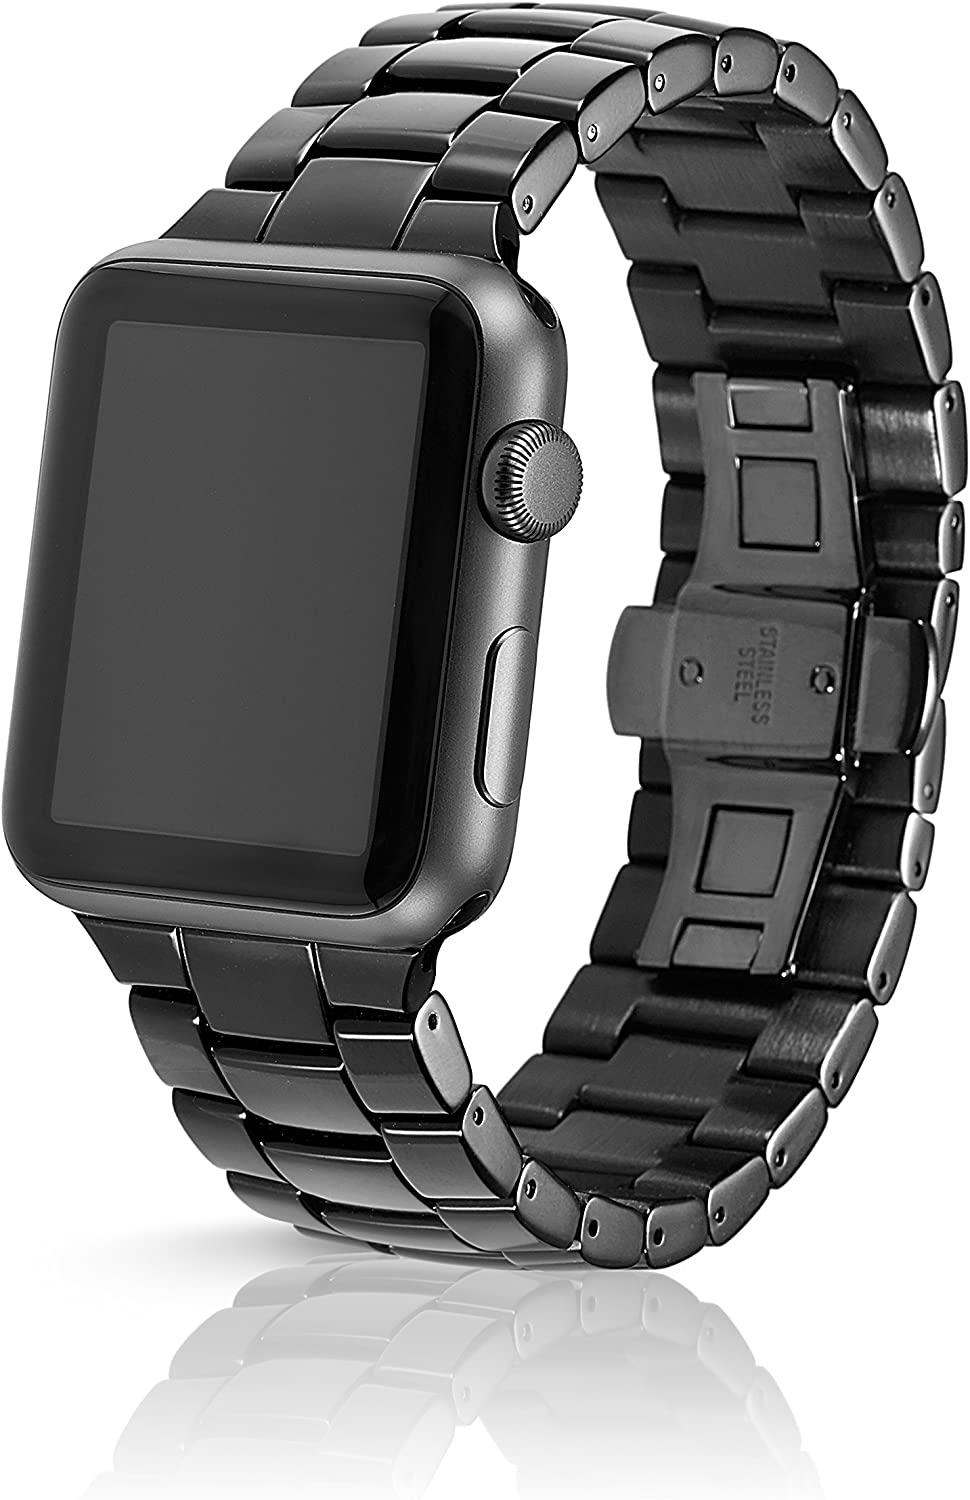 42/44mm JUUK Velo Premium Watch Band Made for The Apple Watch, Using Aircraft Grade, Hard Anodized 6000 Series Aluminum with a Solid Stainless Steel Butterfly deployant Buckle (Obsidian) 819Aqe2BrFlL